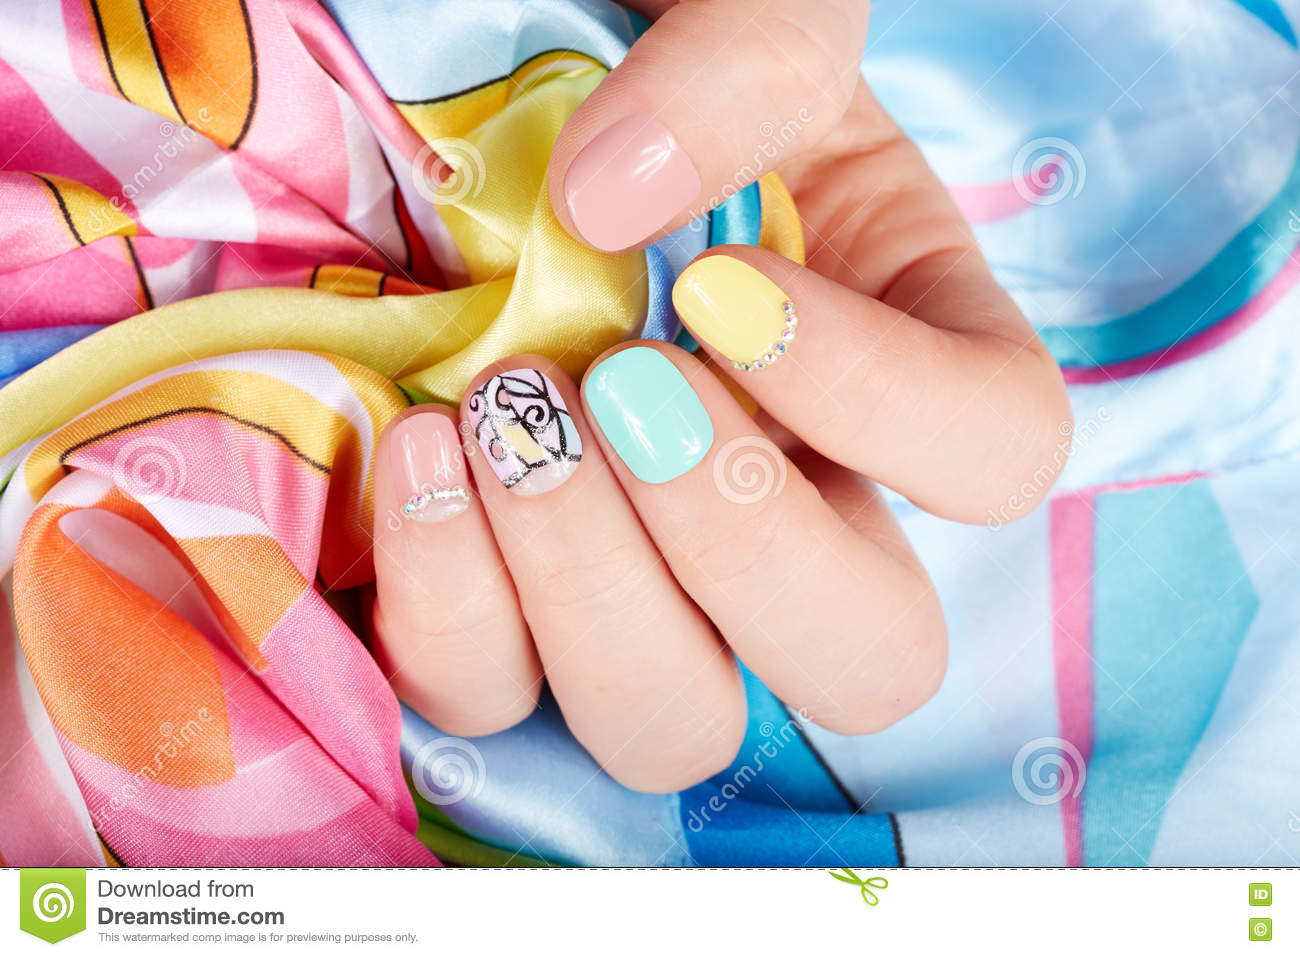 Hand With Beautiful Manicured Nails Stock Photo - Image of long ...